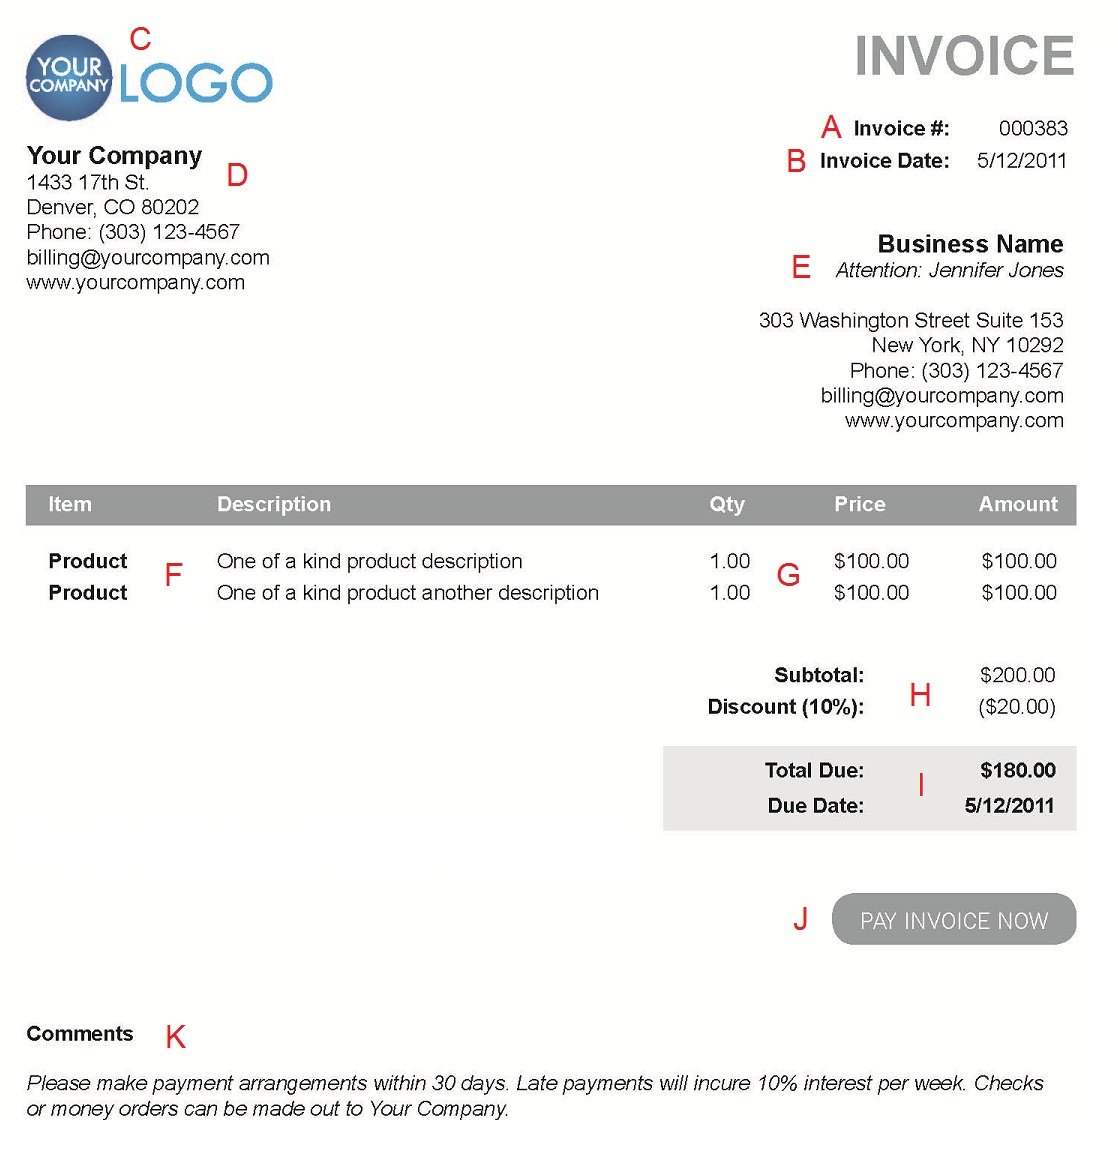 Ultrablogus  Winning The  Different Sections Of An Electronic Payment Invoice With Glamorous A  With Endearing Tow Receipt Also Receipt Generator Online In Addition Registered Mail Return Receipt Requested And Mobile Receipt Scanner As Well As Military Hand Receipt Additionally Make Your Own Receipts From Paysimplecom With Ultrablogus  Glamorous The  Different Sections Of An Electronic Payment Invoice With Endearing A  And Winning Tow Receipt Also Receipt Generator Online In Addition Registered Mail Return Receipt Requested From Paysimplecom